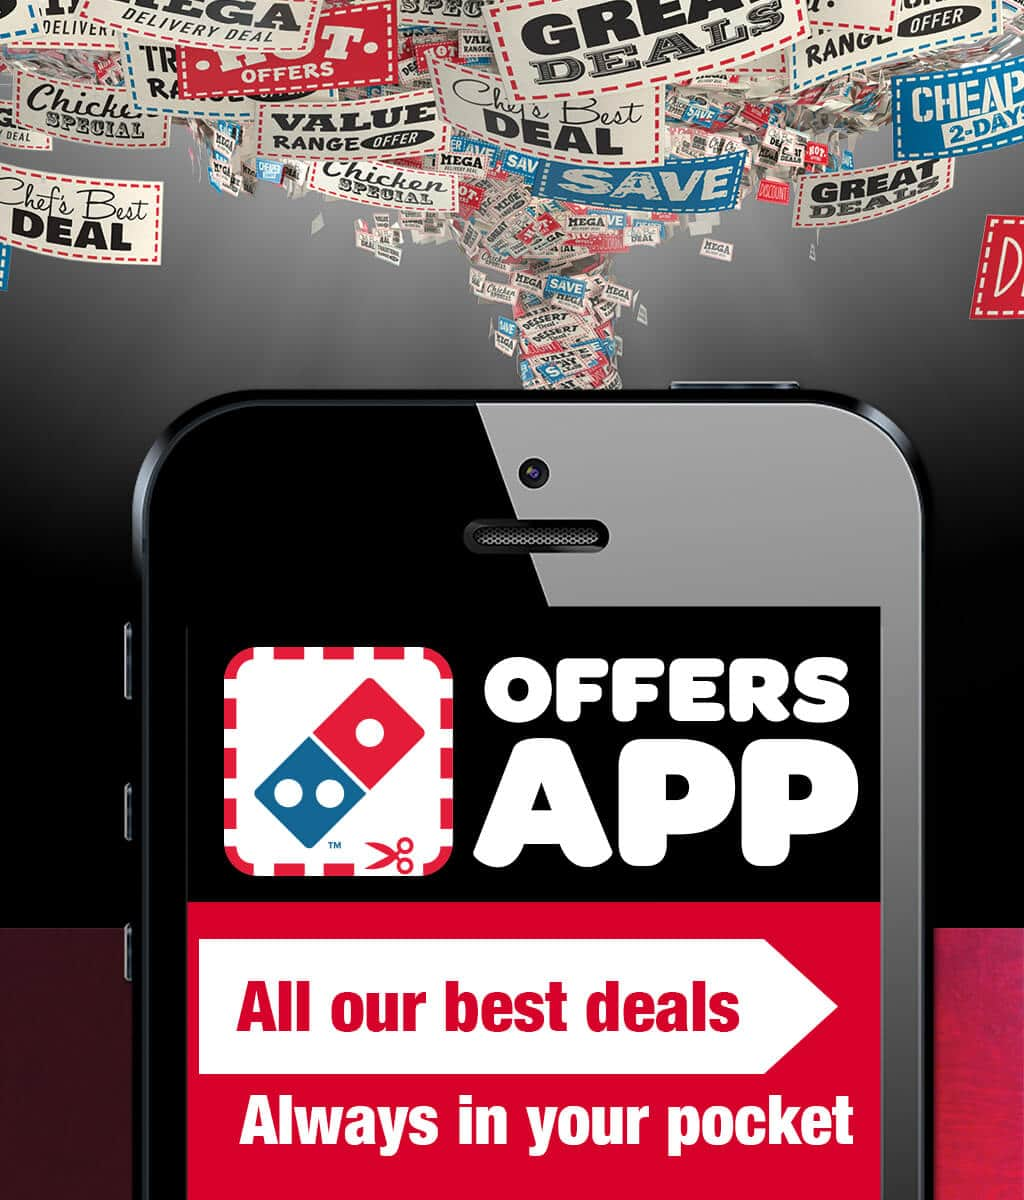 All our best deals. Always in your pocket